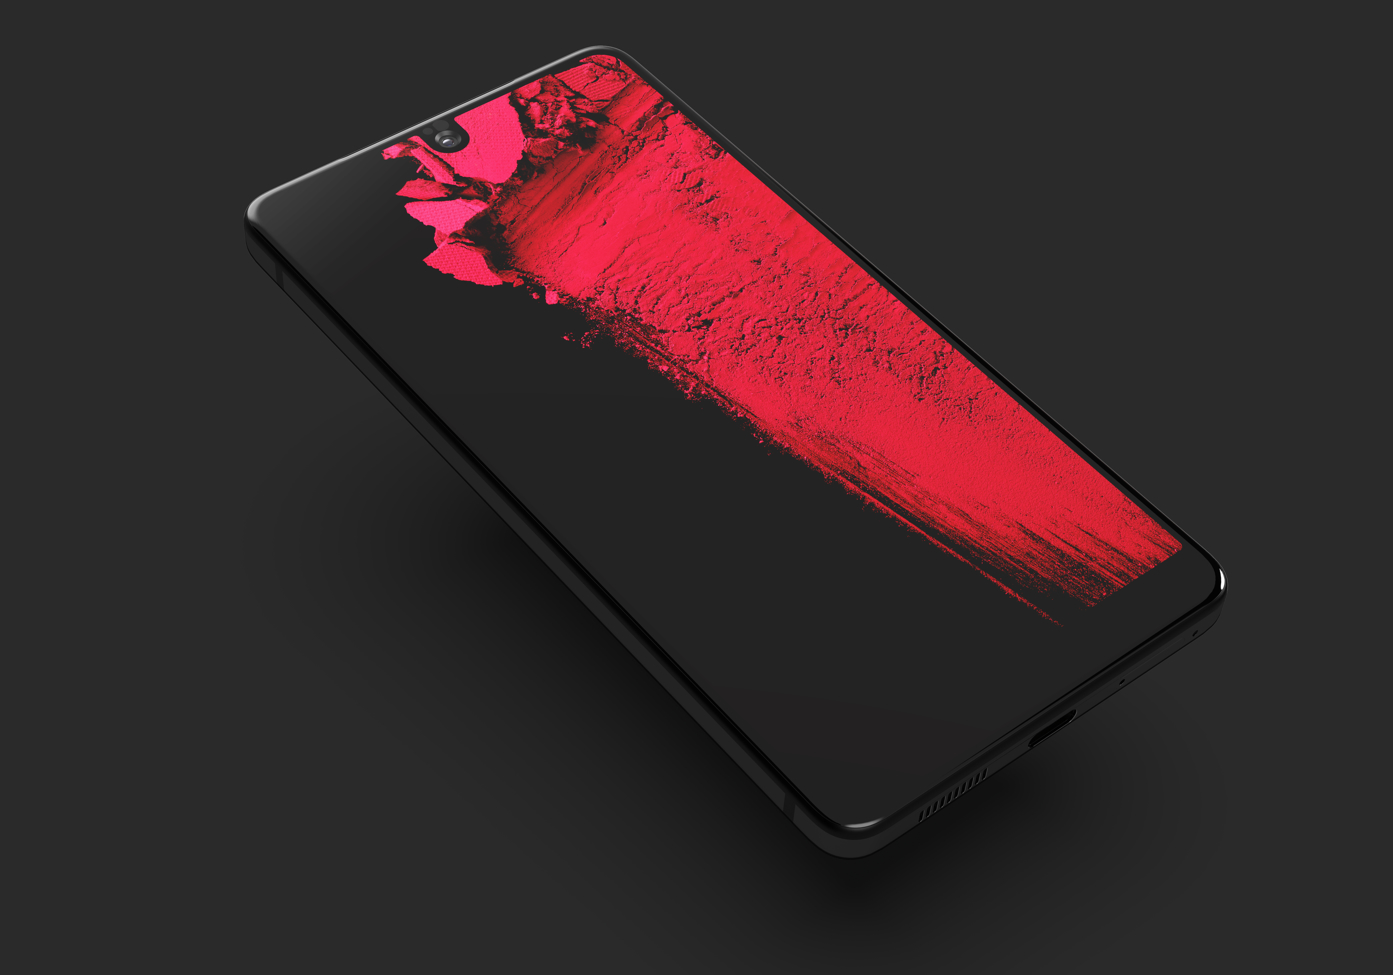 Essential's Next Phone Reportedly Different Than Any Other